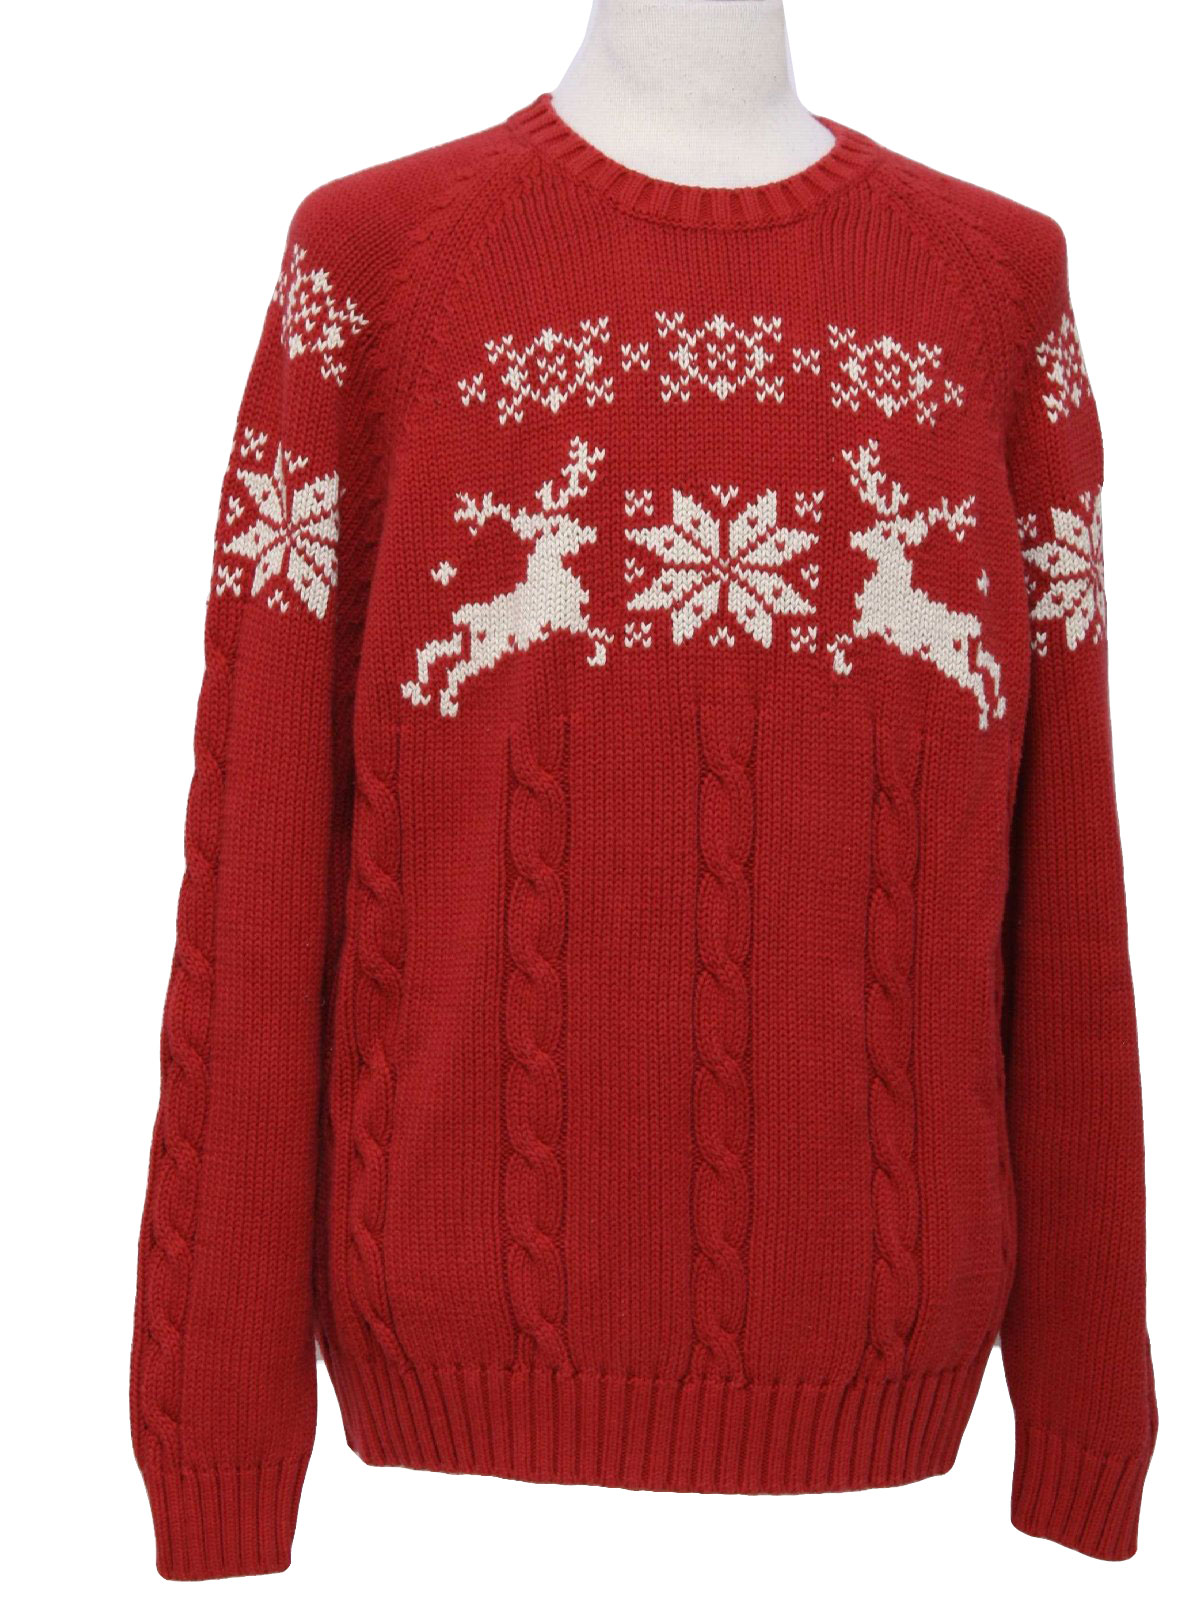 dc9270cffa Retro 1990s Sweater  90s -Lands End- Mens red background with white banded  snowflake and reindeer design thick cotton cable knit pullover